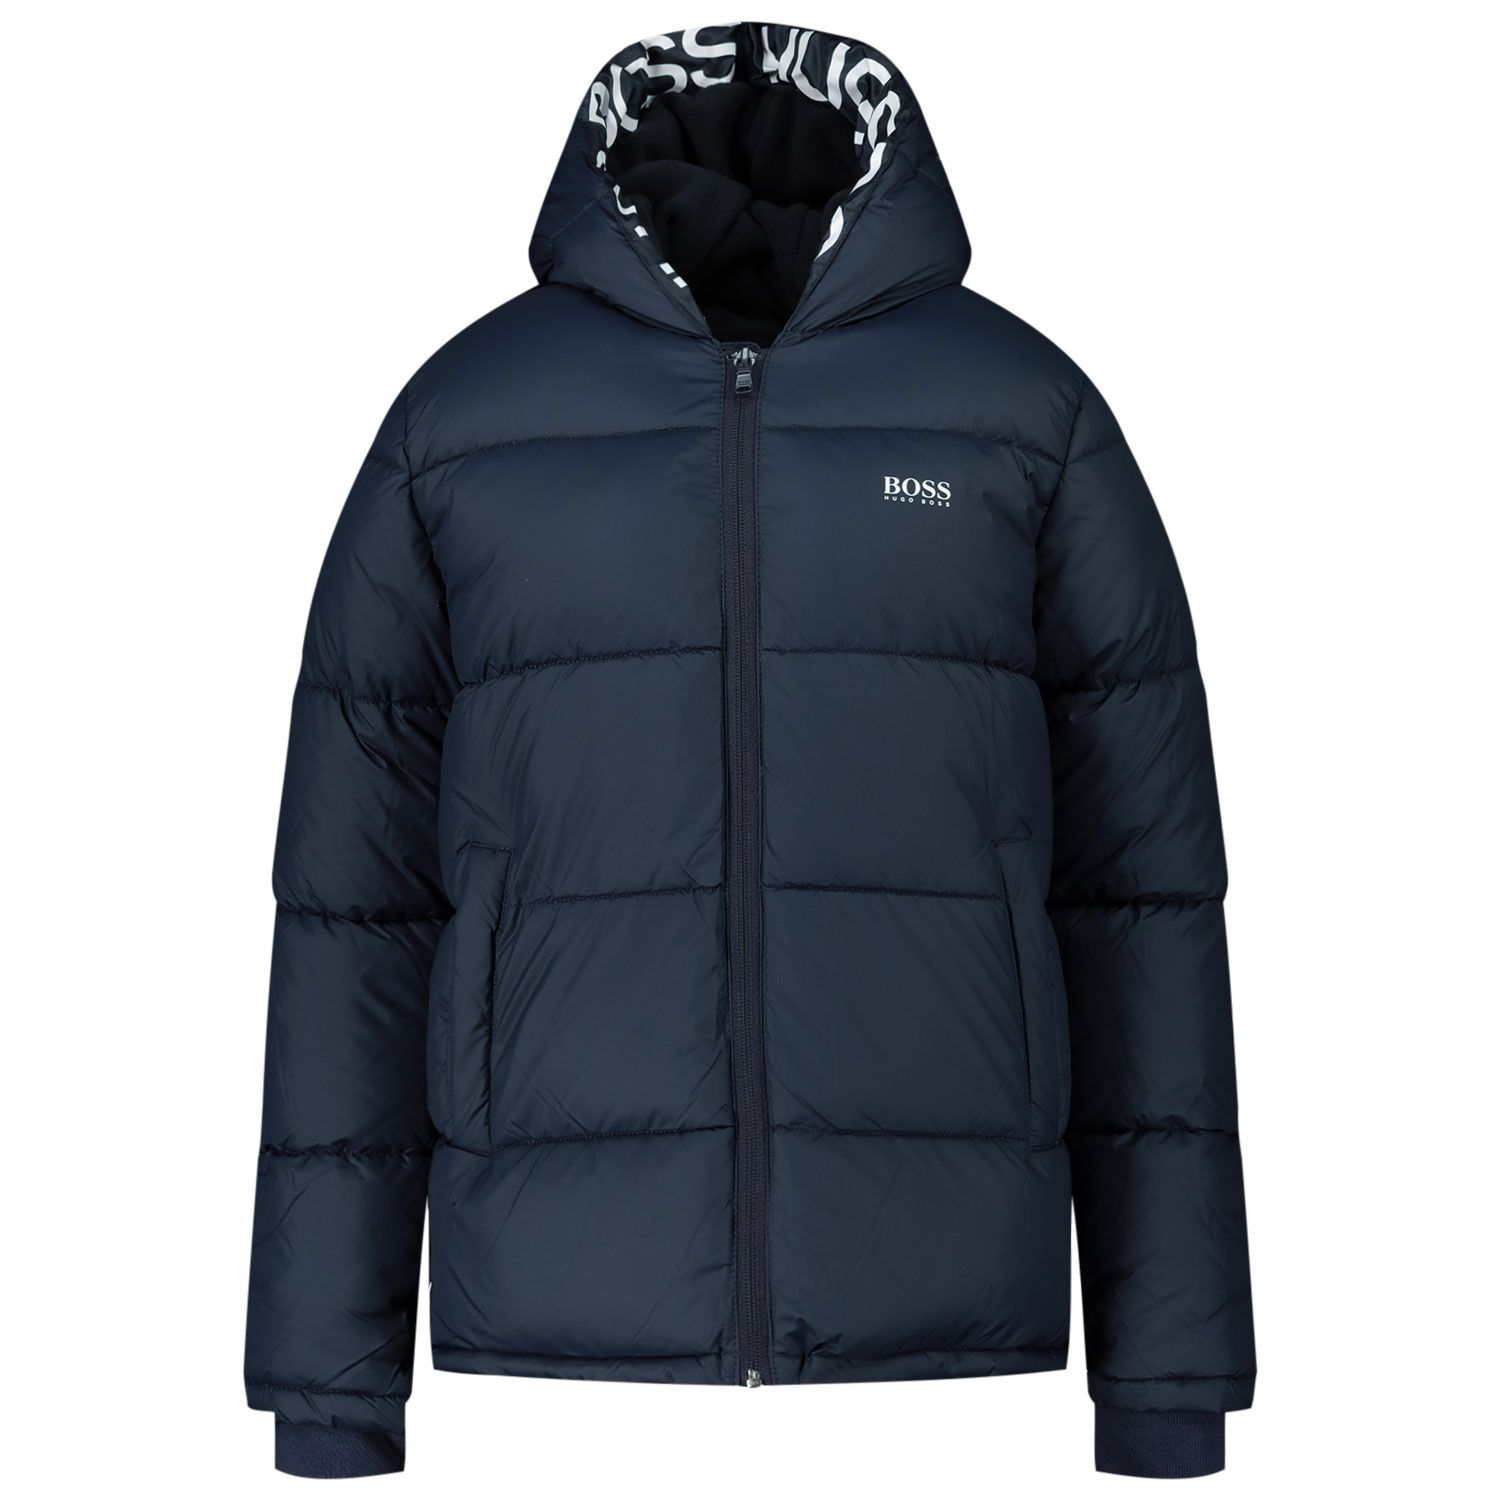 Picture of Boss J26417 kids jacket navy